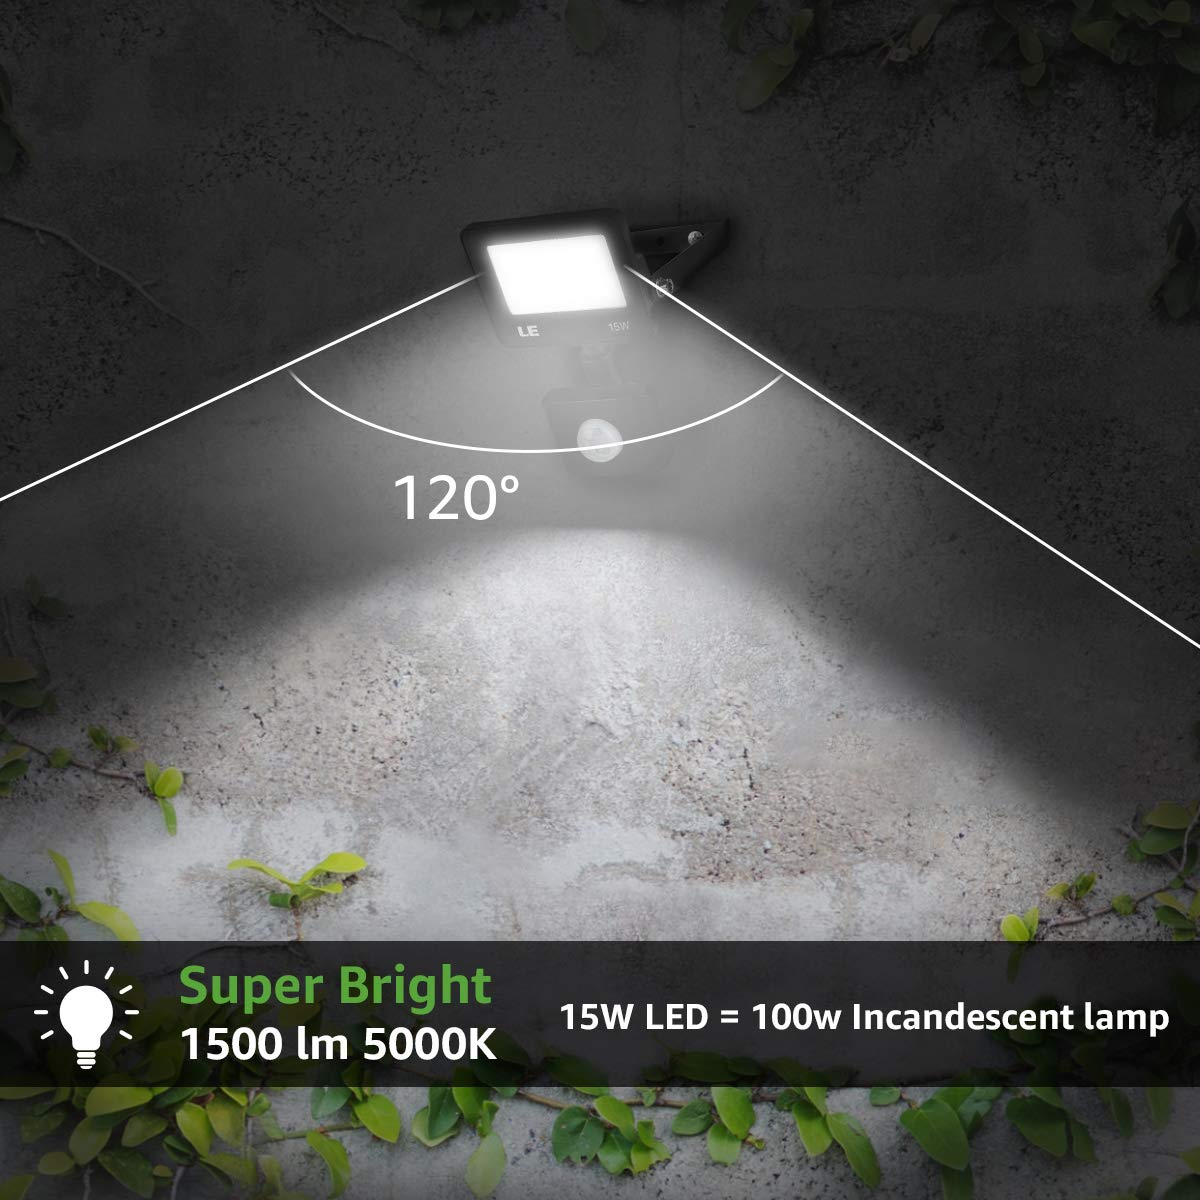 LE Security Lights with Motion Sensor Backyard Rooftop and More 30W Daylight PIR Sensor Floodlight 3000 Lumen Outdoor Lights for Patio IP65 Water-Resistant 200W Incandescent Lamp Equivalent